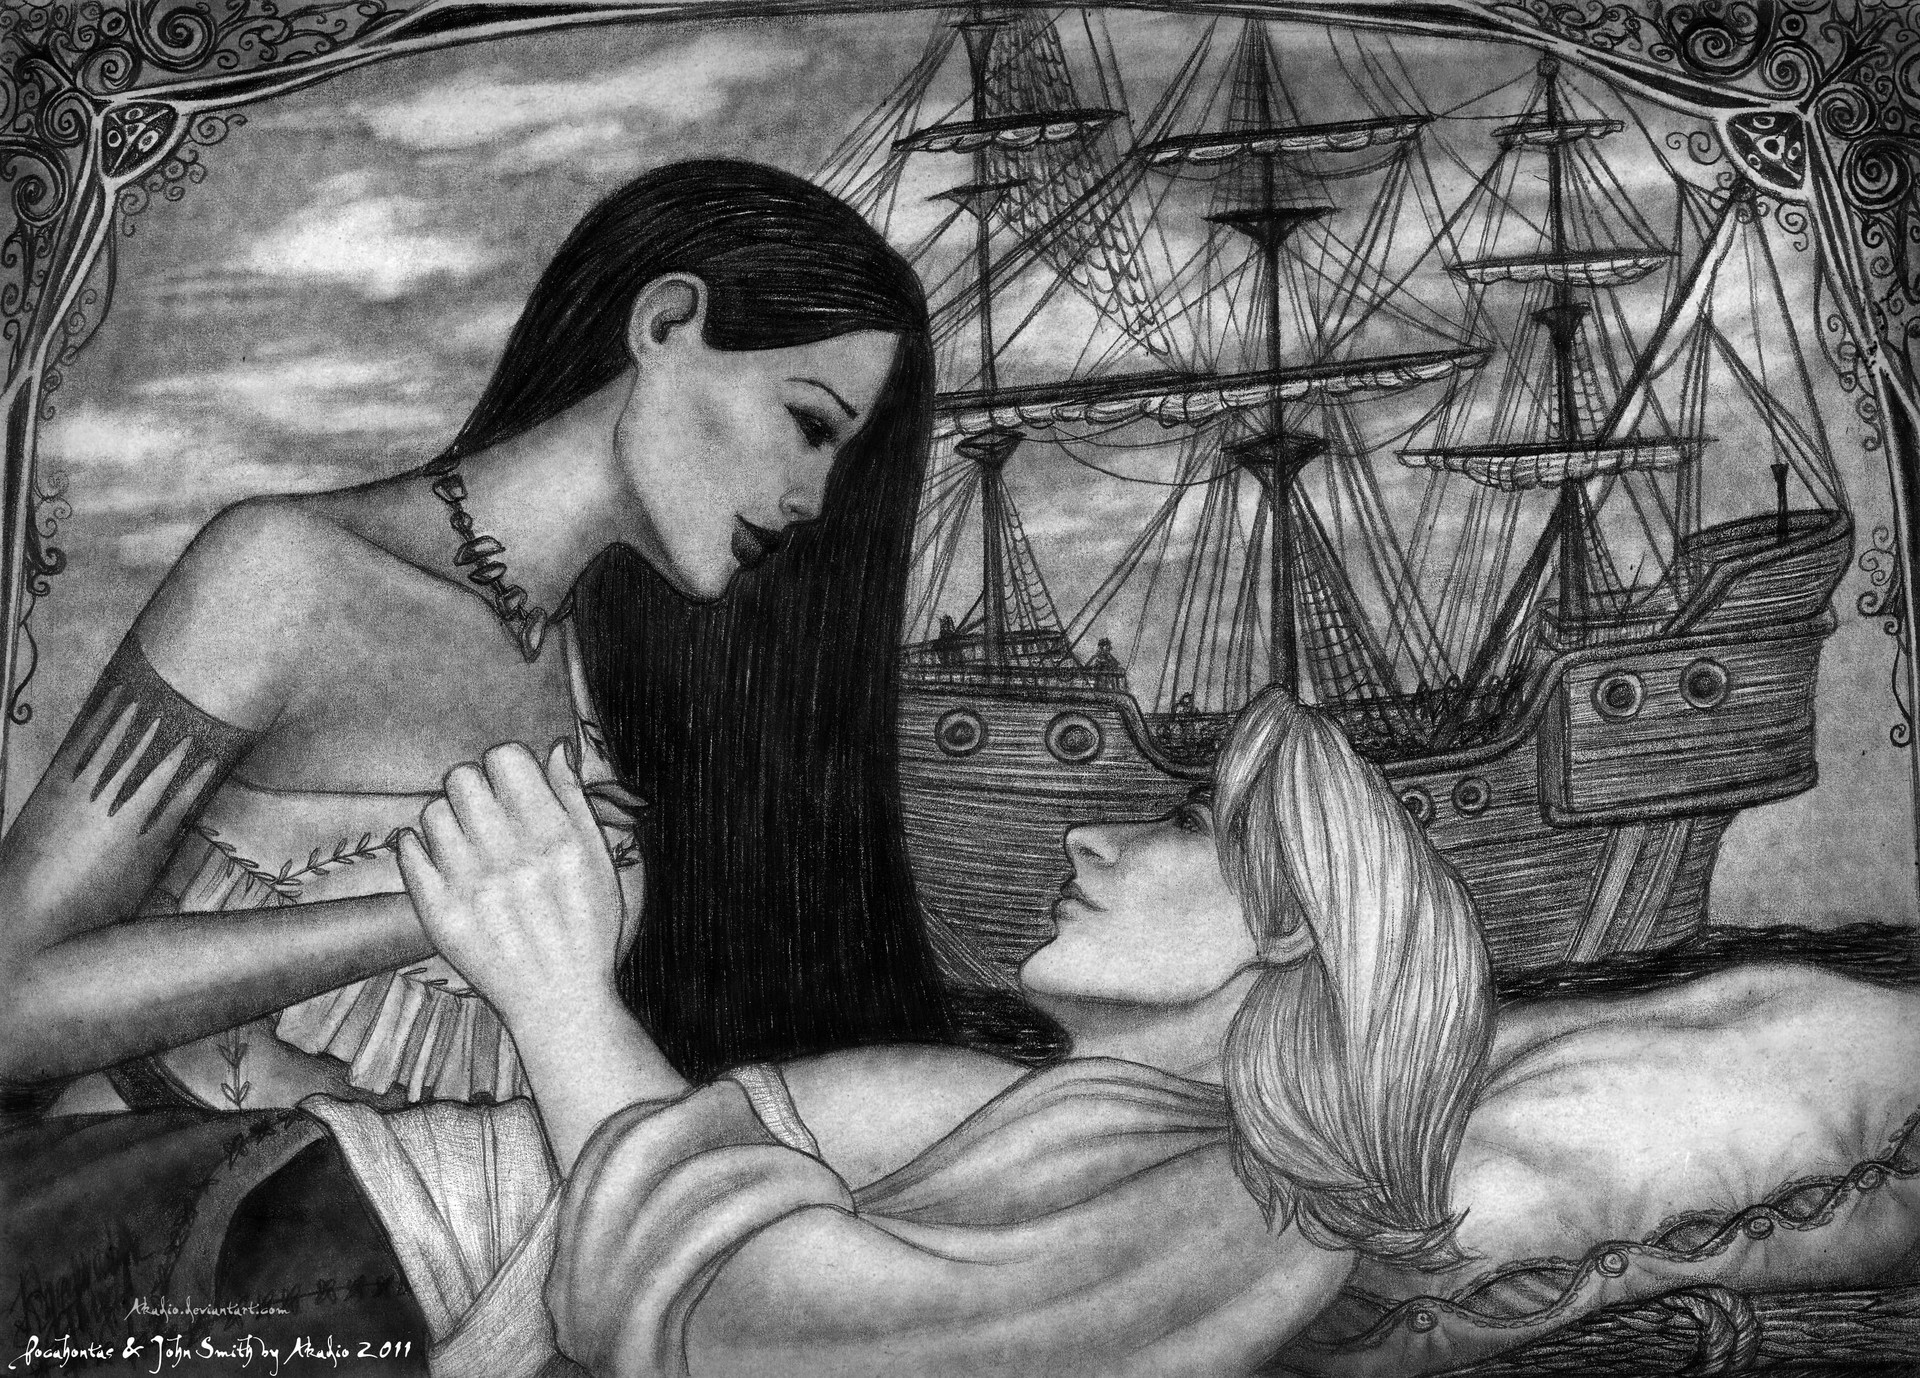 an analysis of the real life and john smiths legend of pocahontas Pocahontas and john smith [1] pocahontas was only a young girl, perhaps twelve years of age, when john smith and other english men were camped out in jamestown, virginia, during the early seventeenth century.